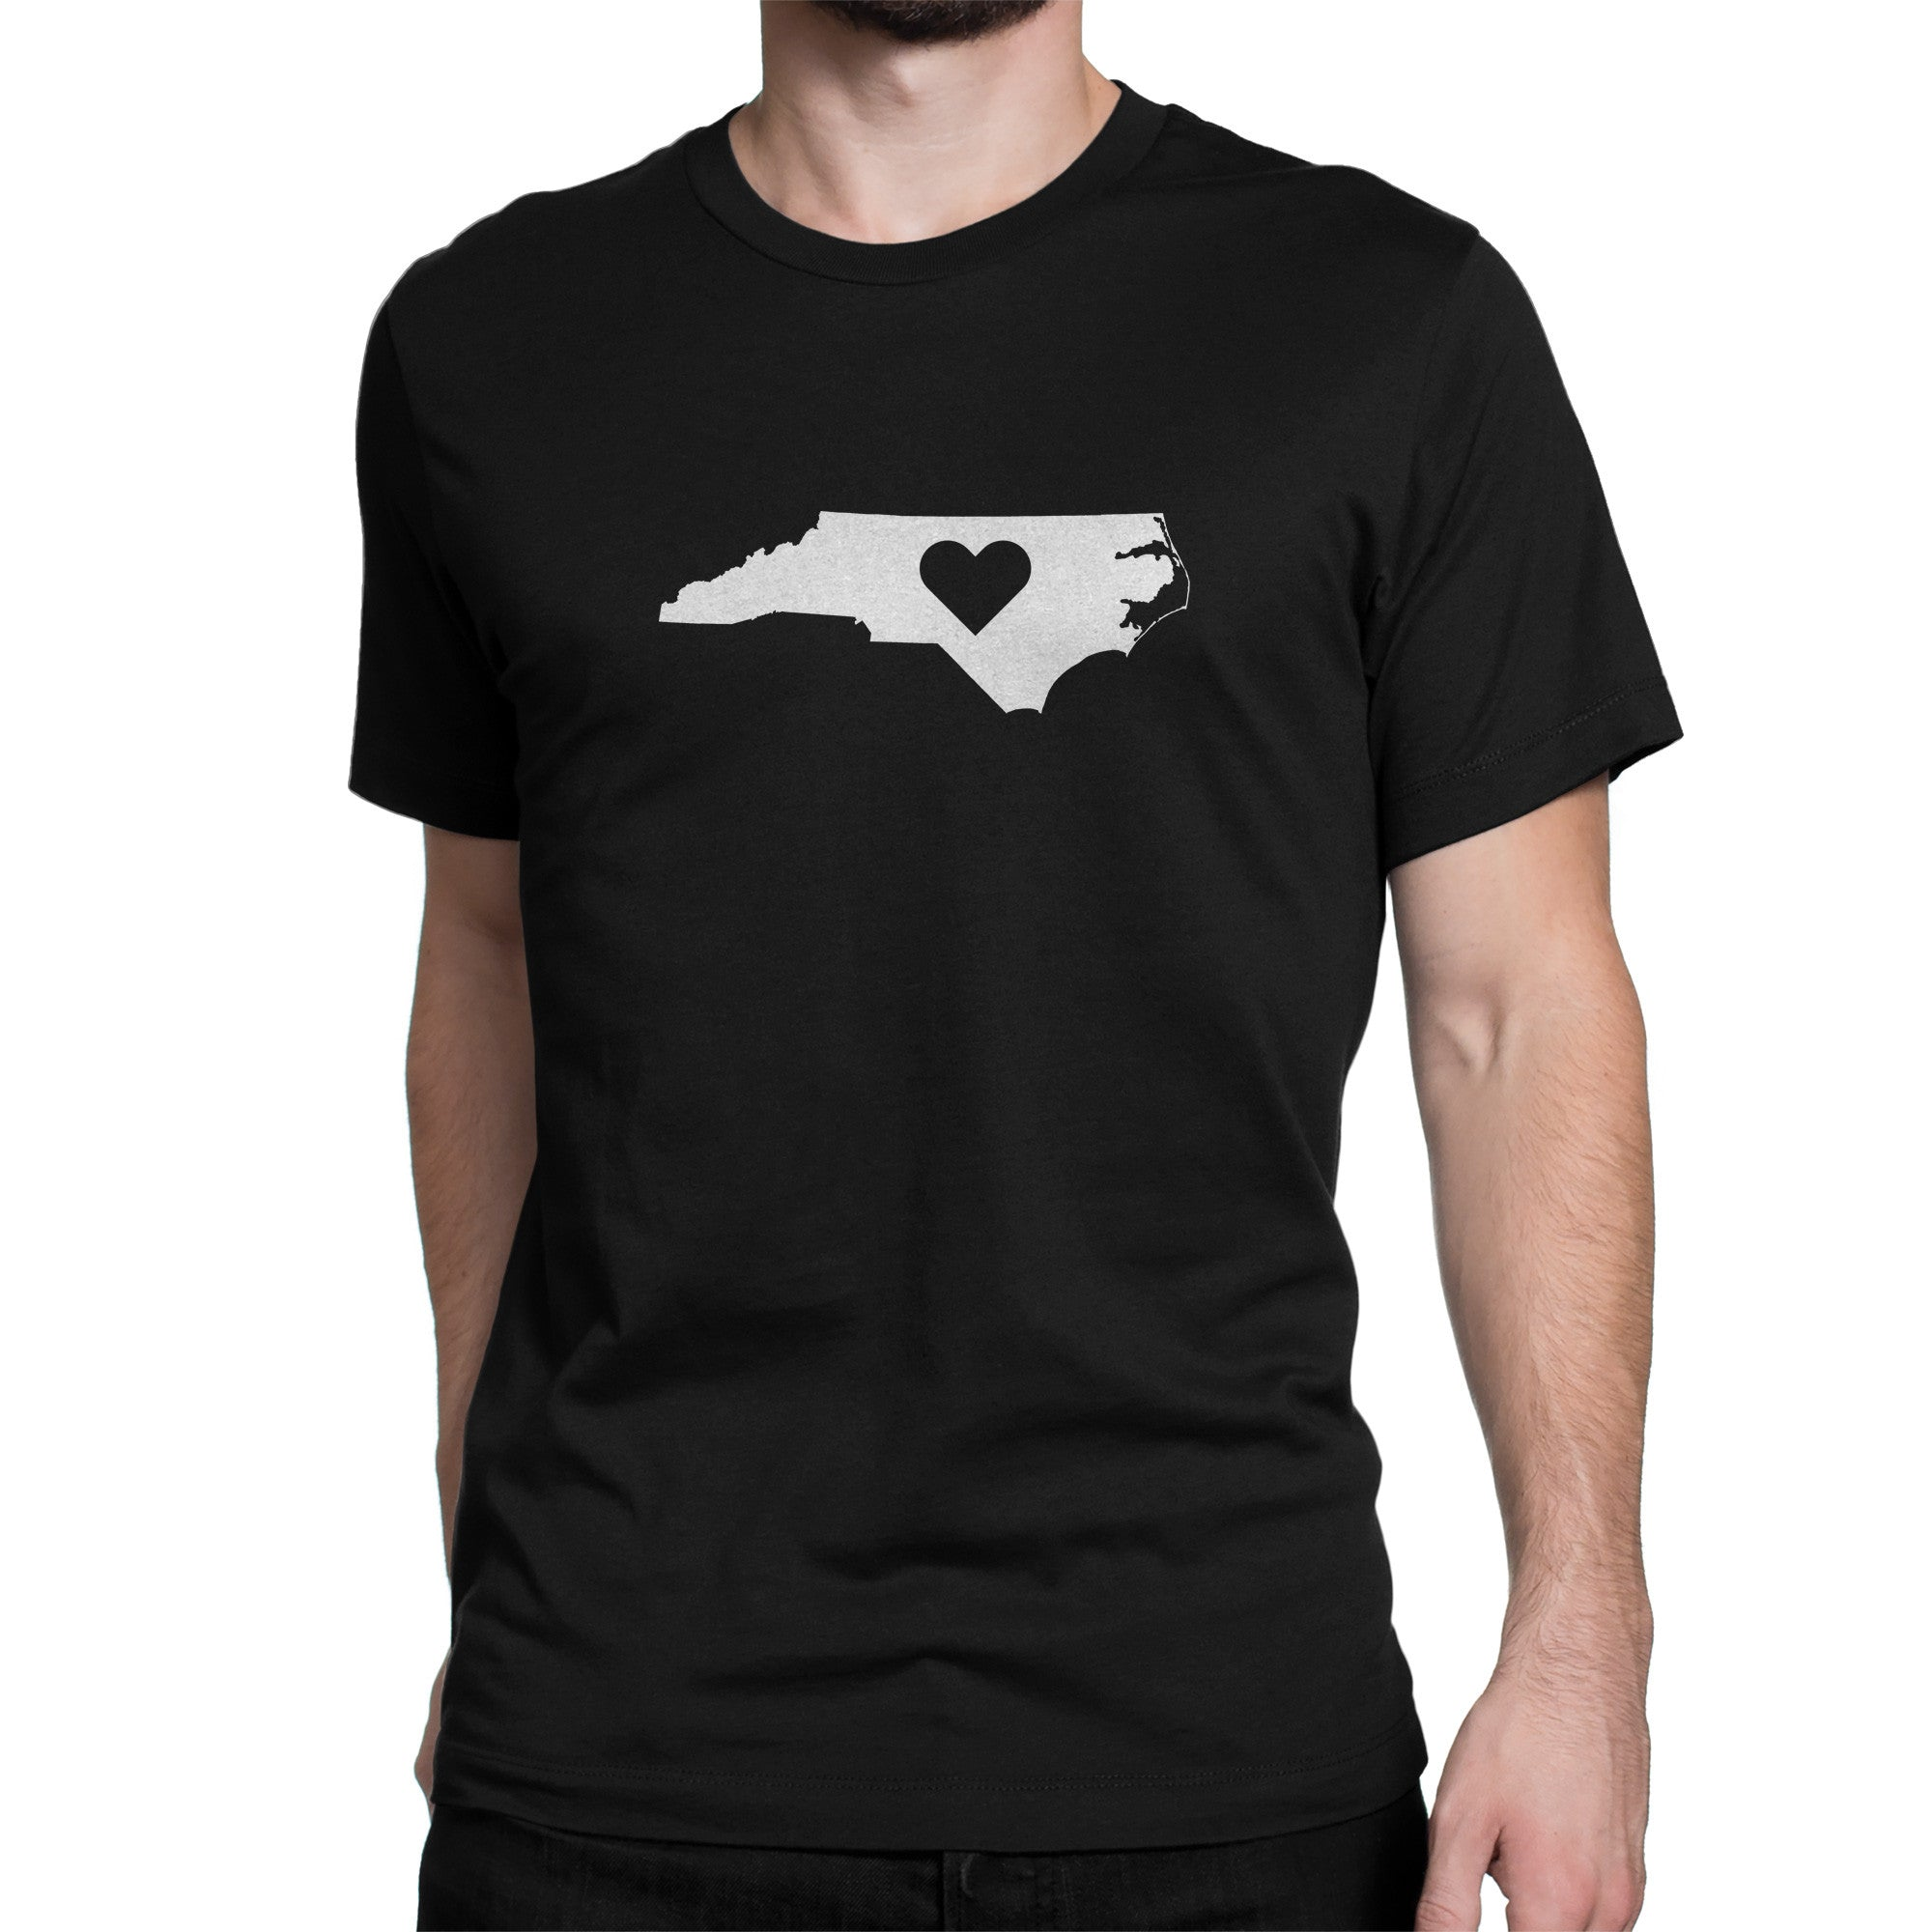 North Carolina State Heart Shirt Black